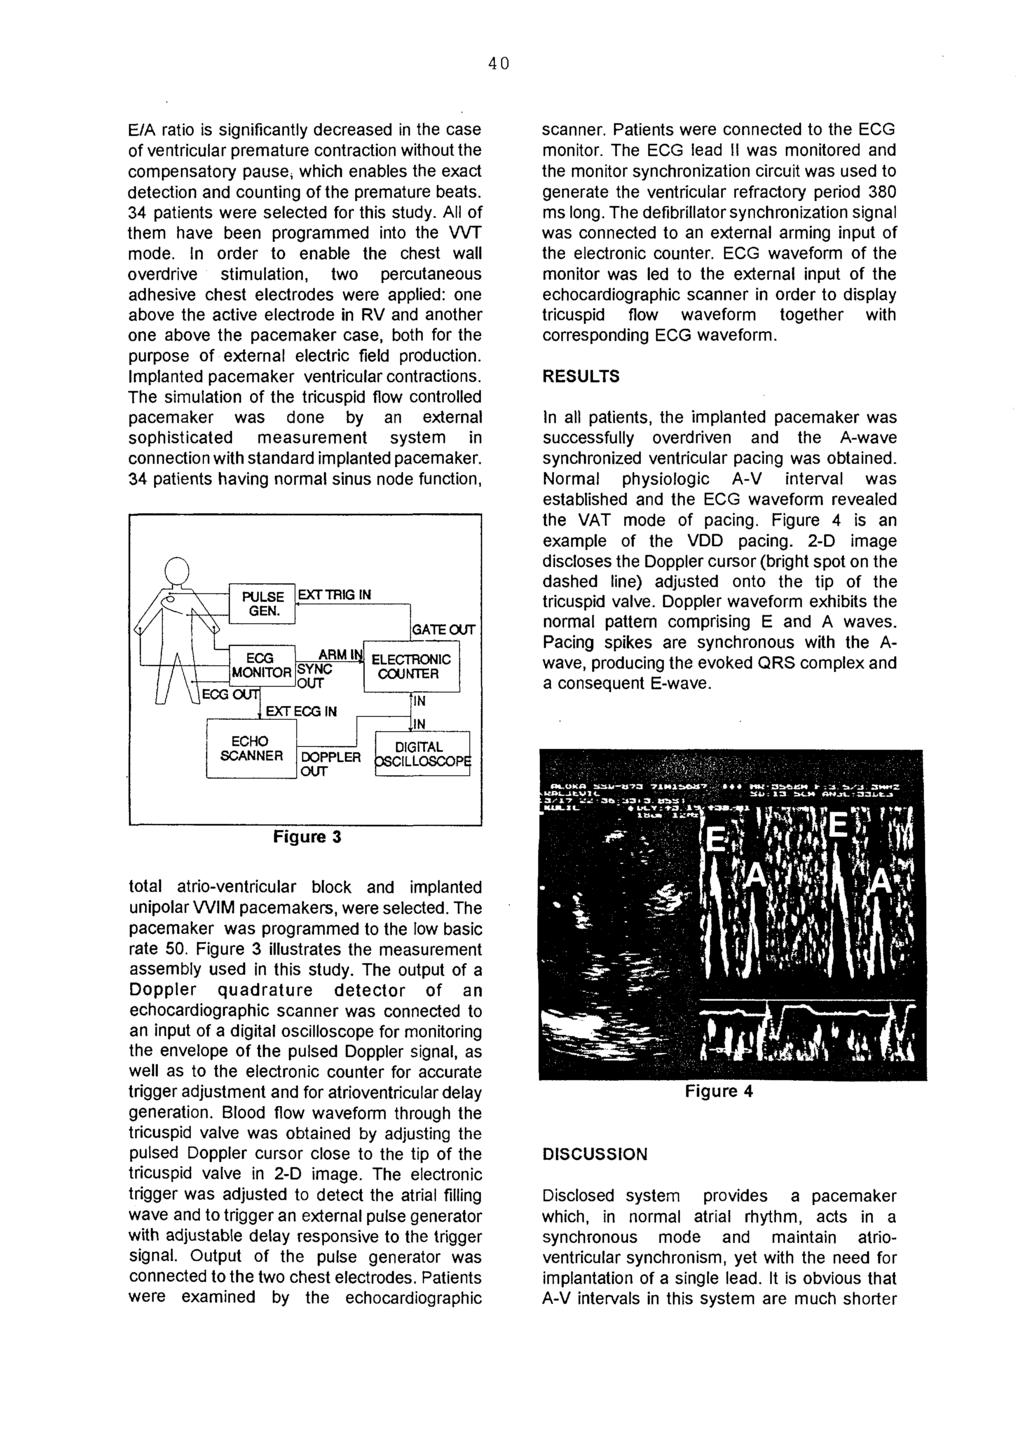 10 International Symposium on Biomedical Engineering '94 - PDF